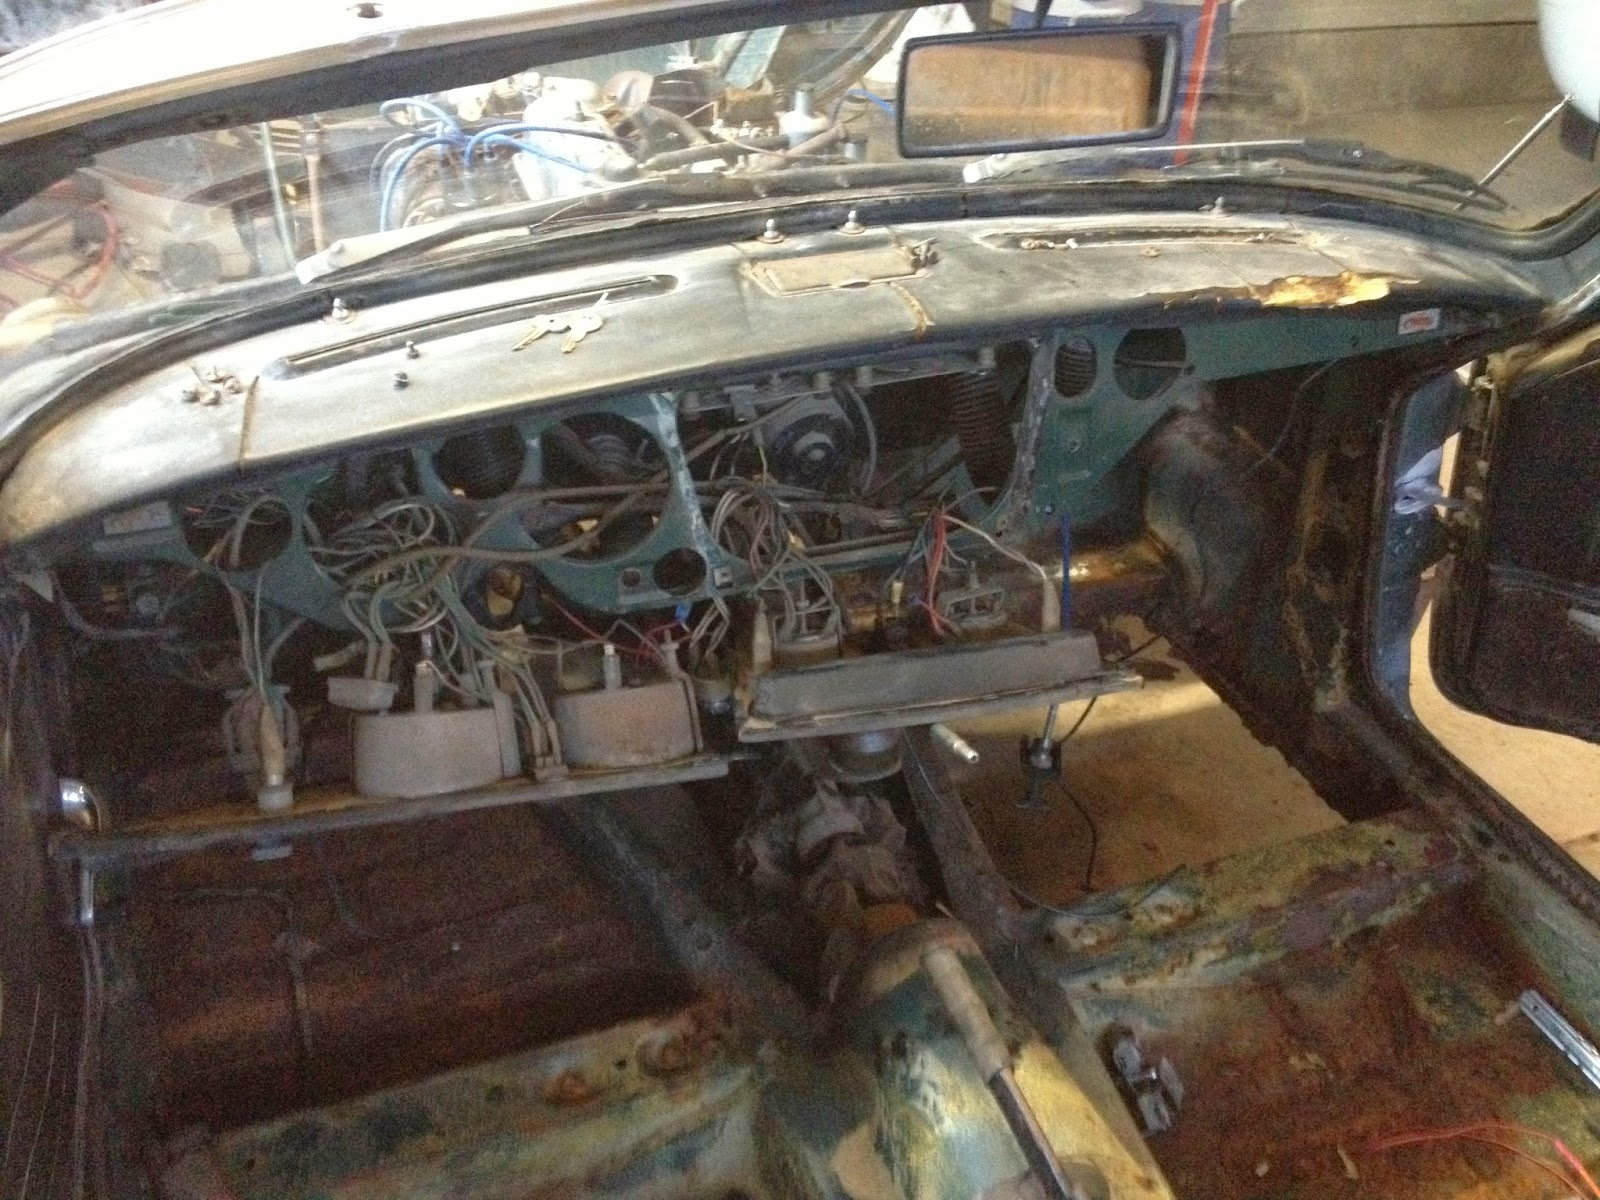 1969 Triumph Spitfire MK3 Project: Wiring woes - here we ...